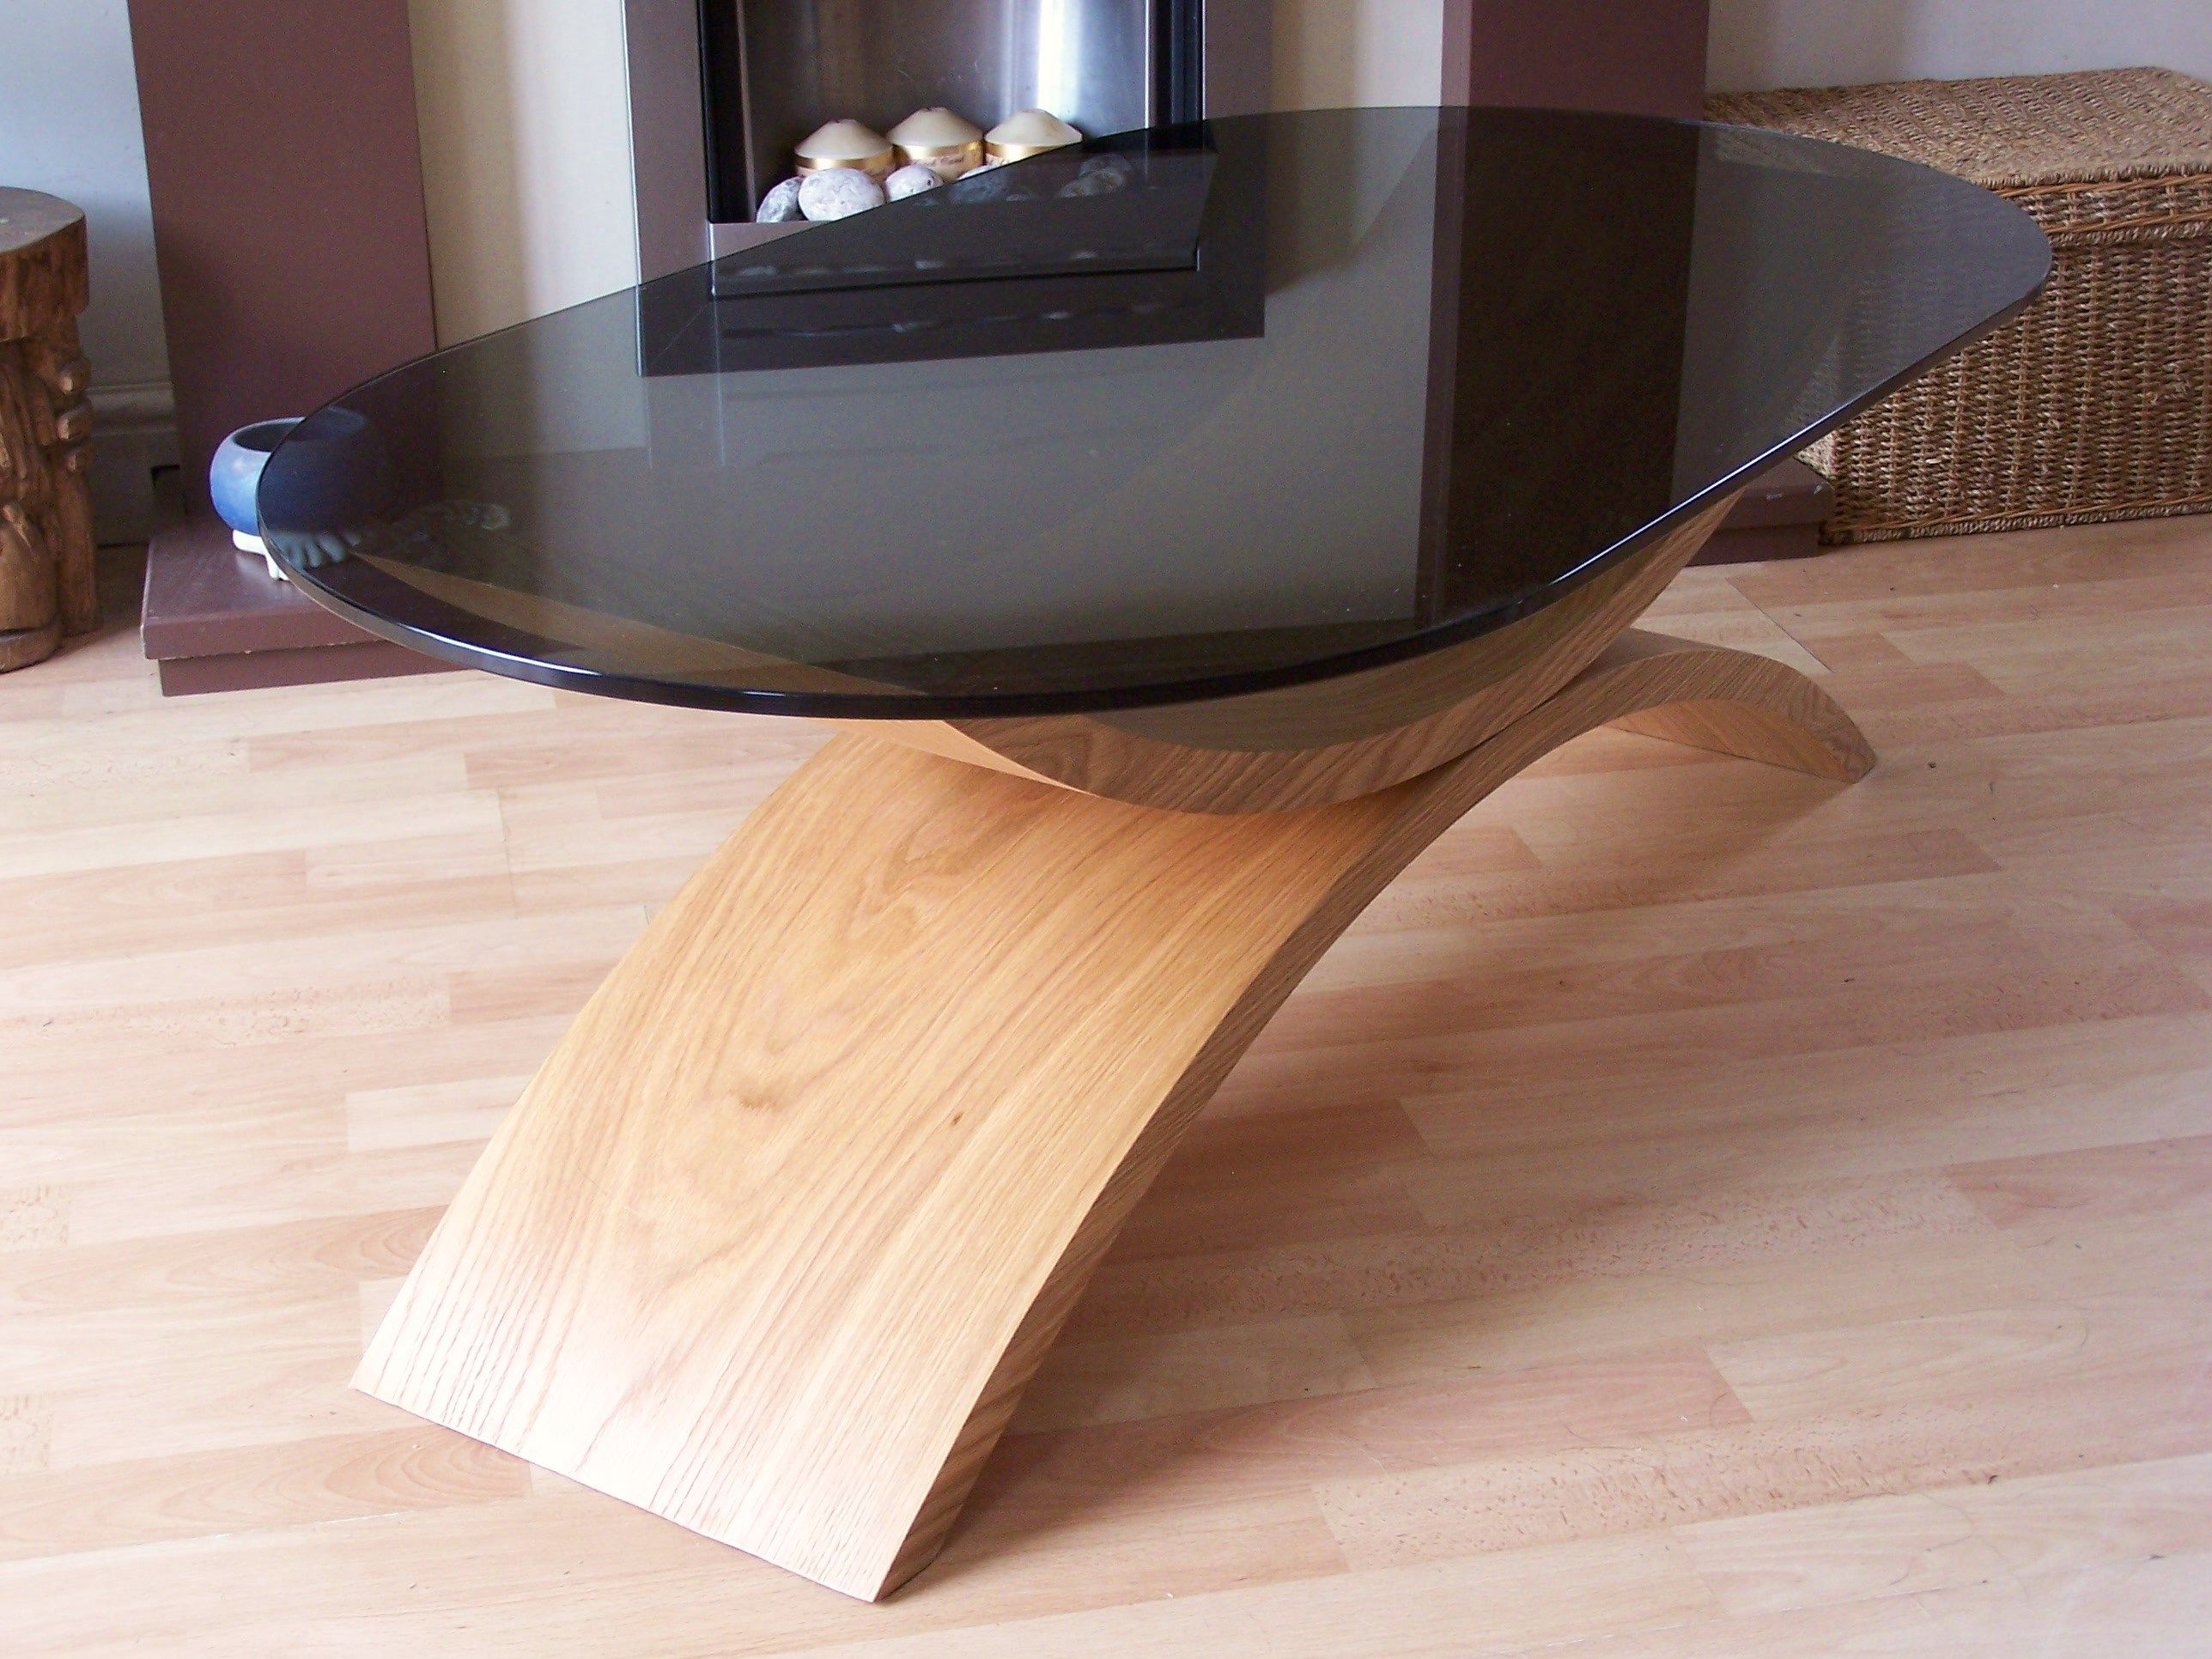 Curved wood coffee table contemporary design smoked glass top curved wood coffee table contemporary design smoked glass top perfect for your living geotapseo Images